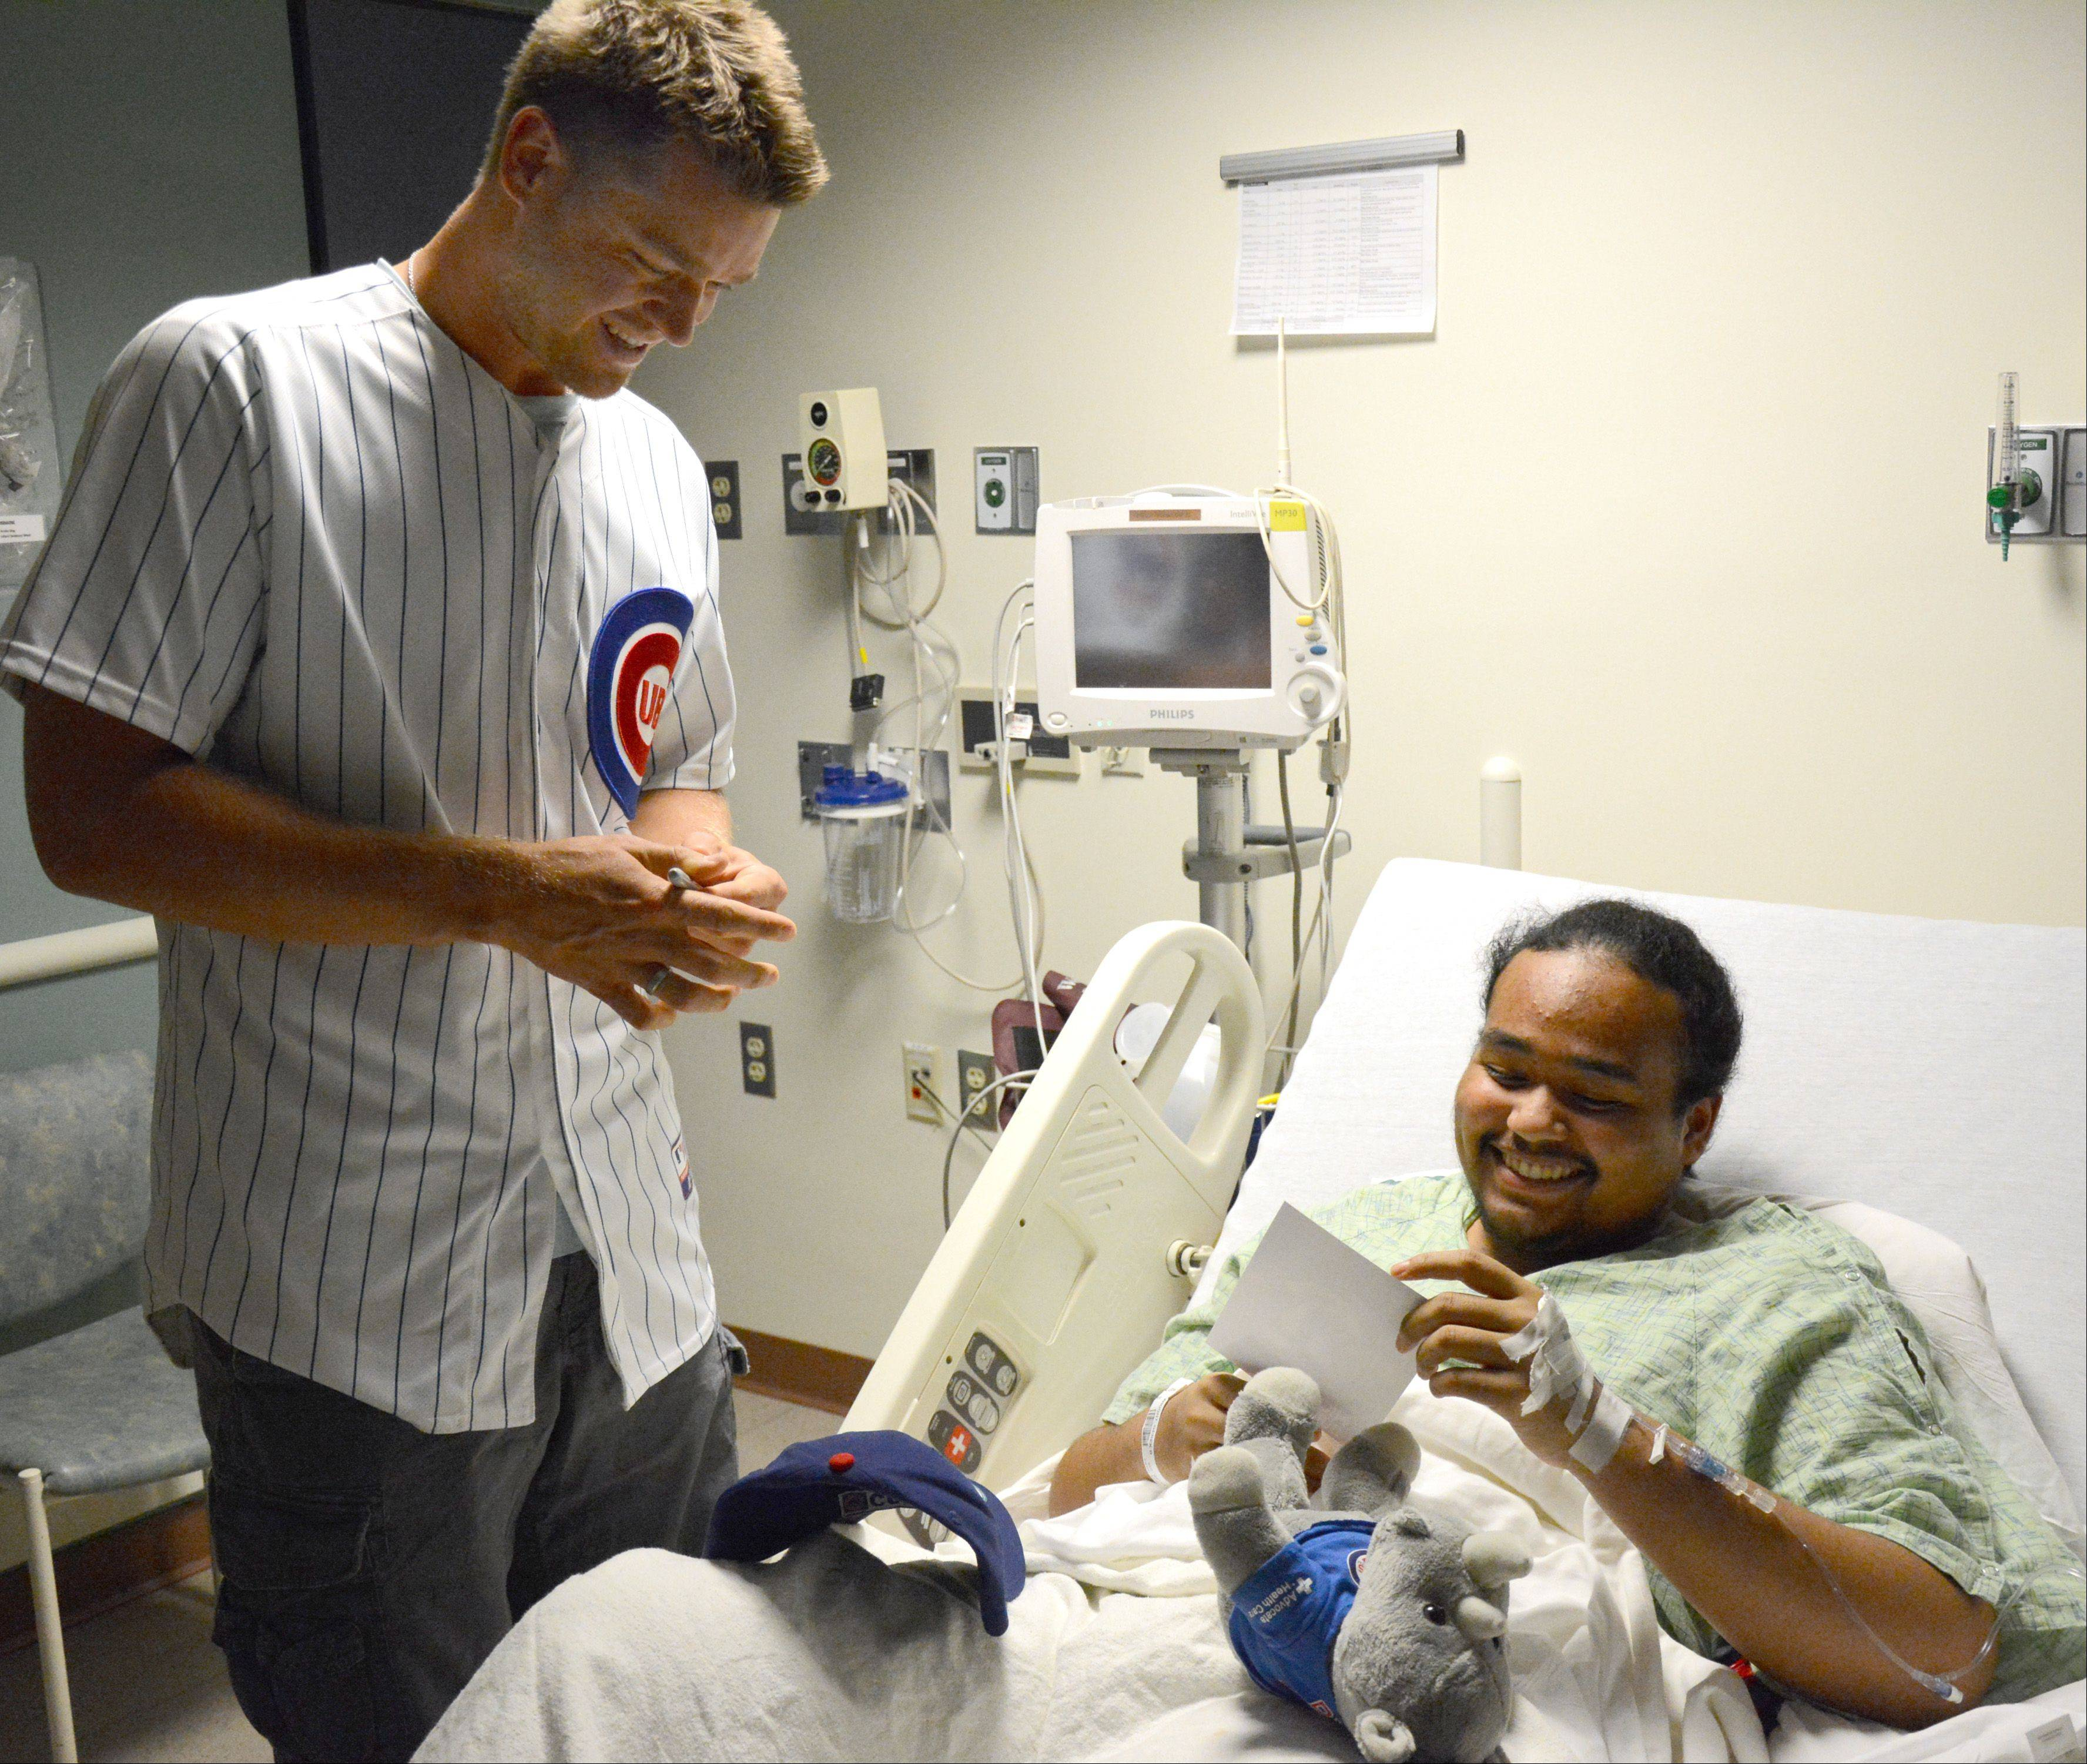 Chicago Cub Michael Bowden hands an autographed picture to Gerek Wright, of Maywood, during a visit Monday to Advocate Children's Hospital in Park Ridge. Bowden told Wright that he was leaving his autograph so that Wright wouldn't forget him.